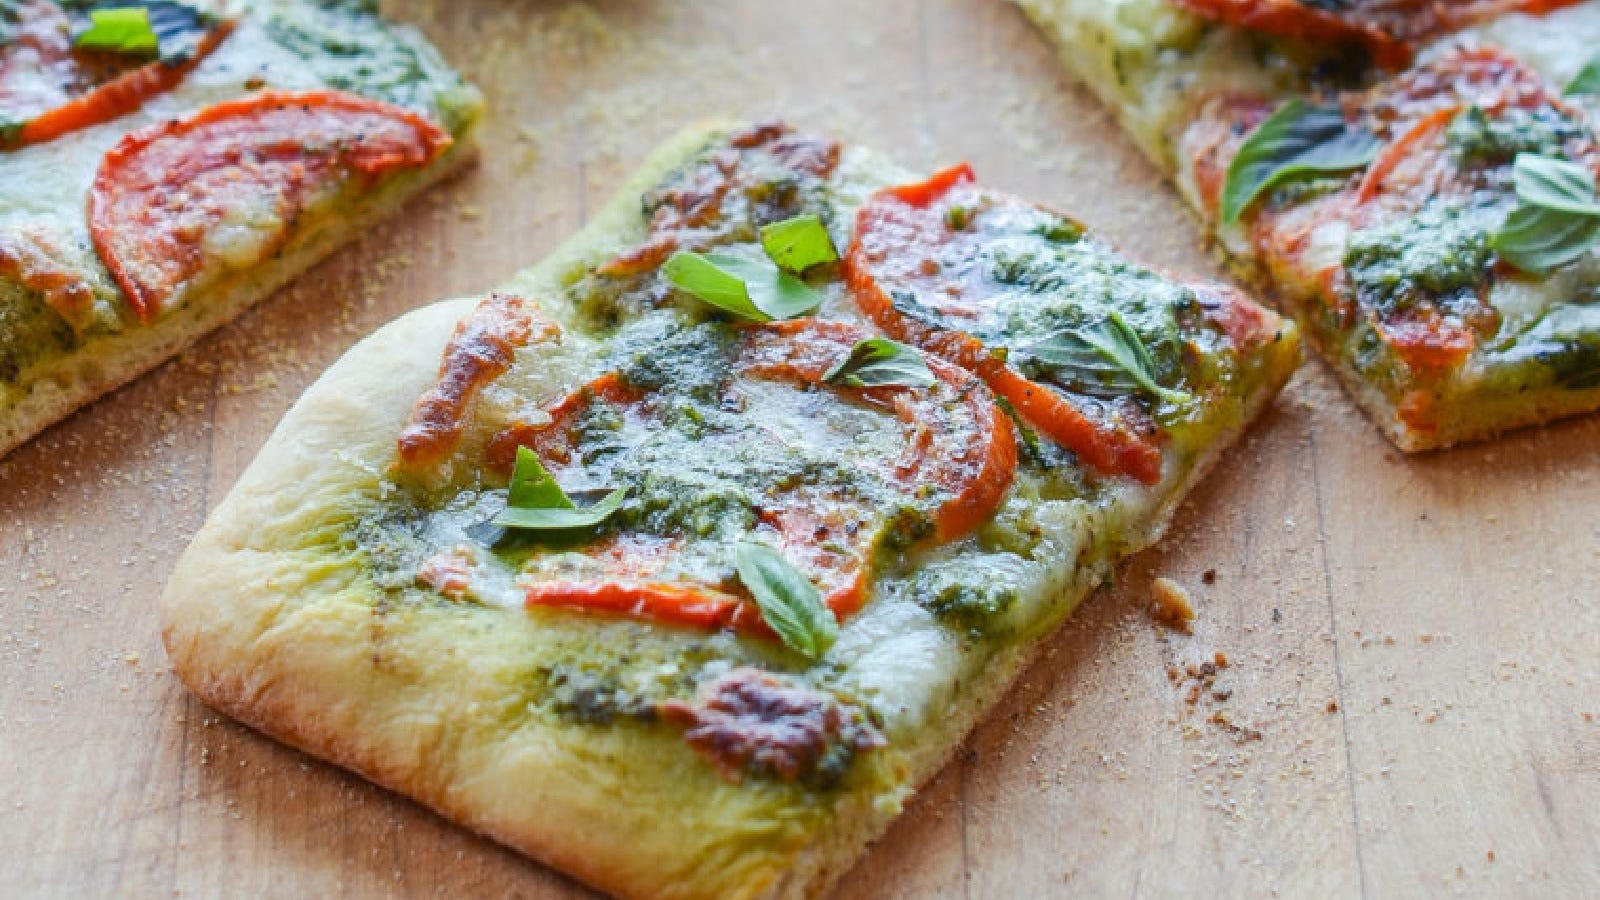 A sheet pizza topped with pesto, sliced tomatoes and mozzarella cheese.